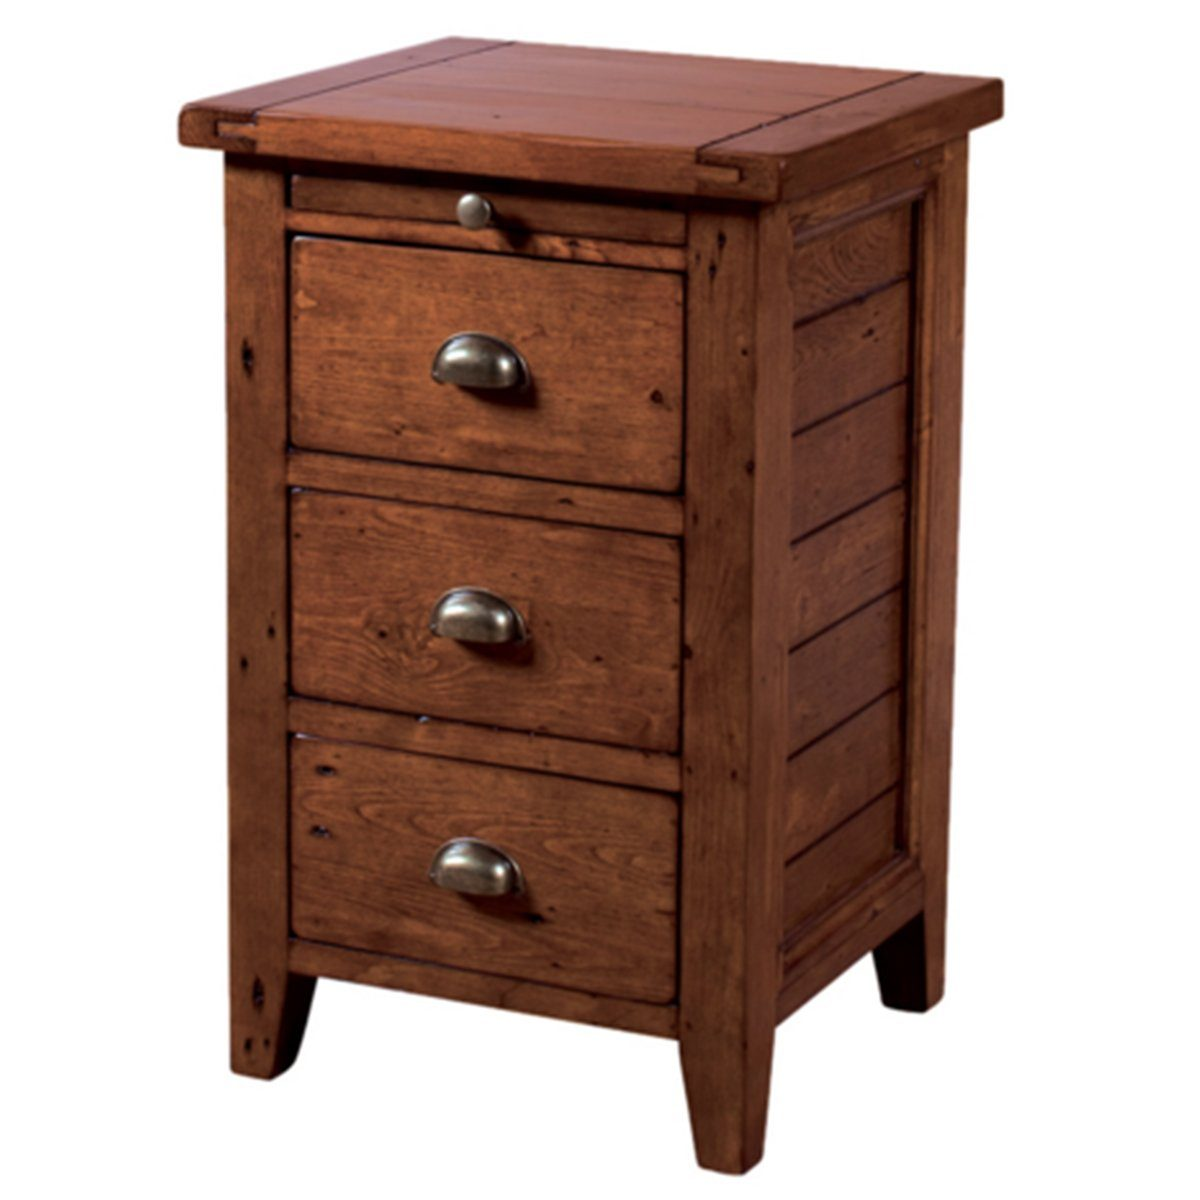 Irish Coast Nightstand 3 Drw - African Dusk nightstands LH